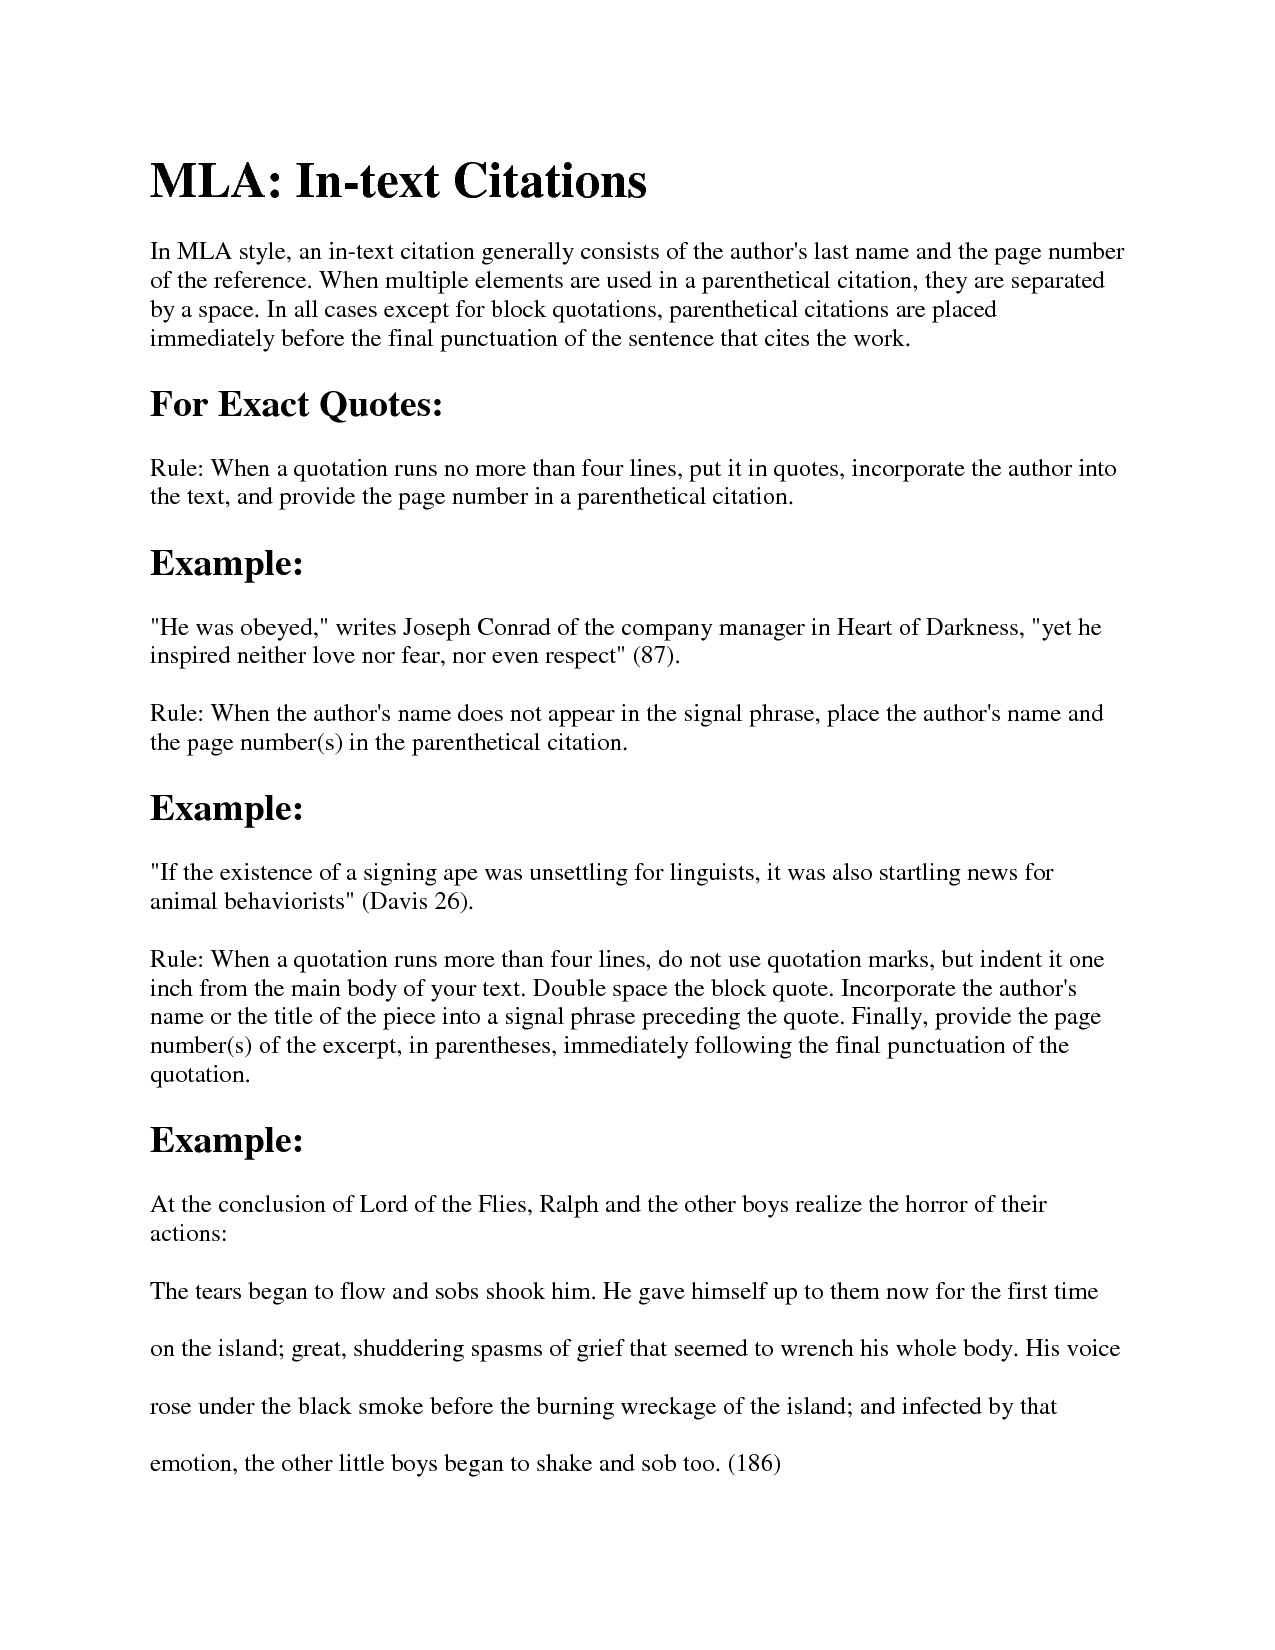 essay titles in quotes Learning to write an essay title in mla format is a necessary skill for any scholarly writer  follow the author's last name with the author's first name, the title of the essay in quotation marks, the title of the book or anthology in italics, the name of the editor, the place of publication, the publisher, the year it was published, the.